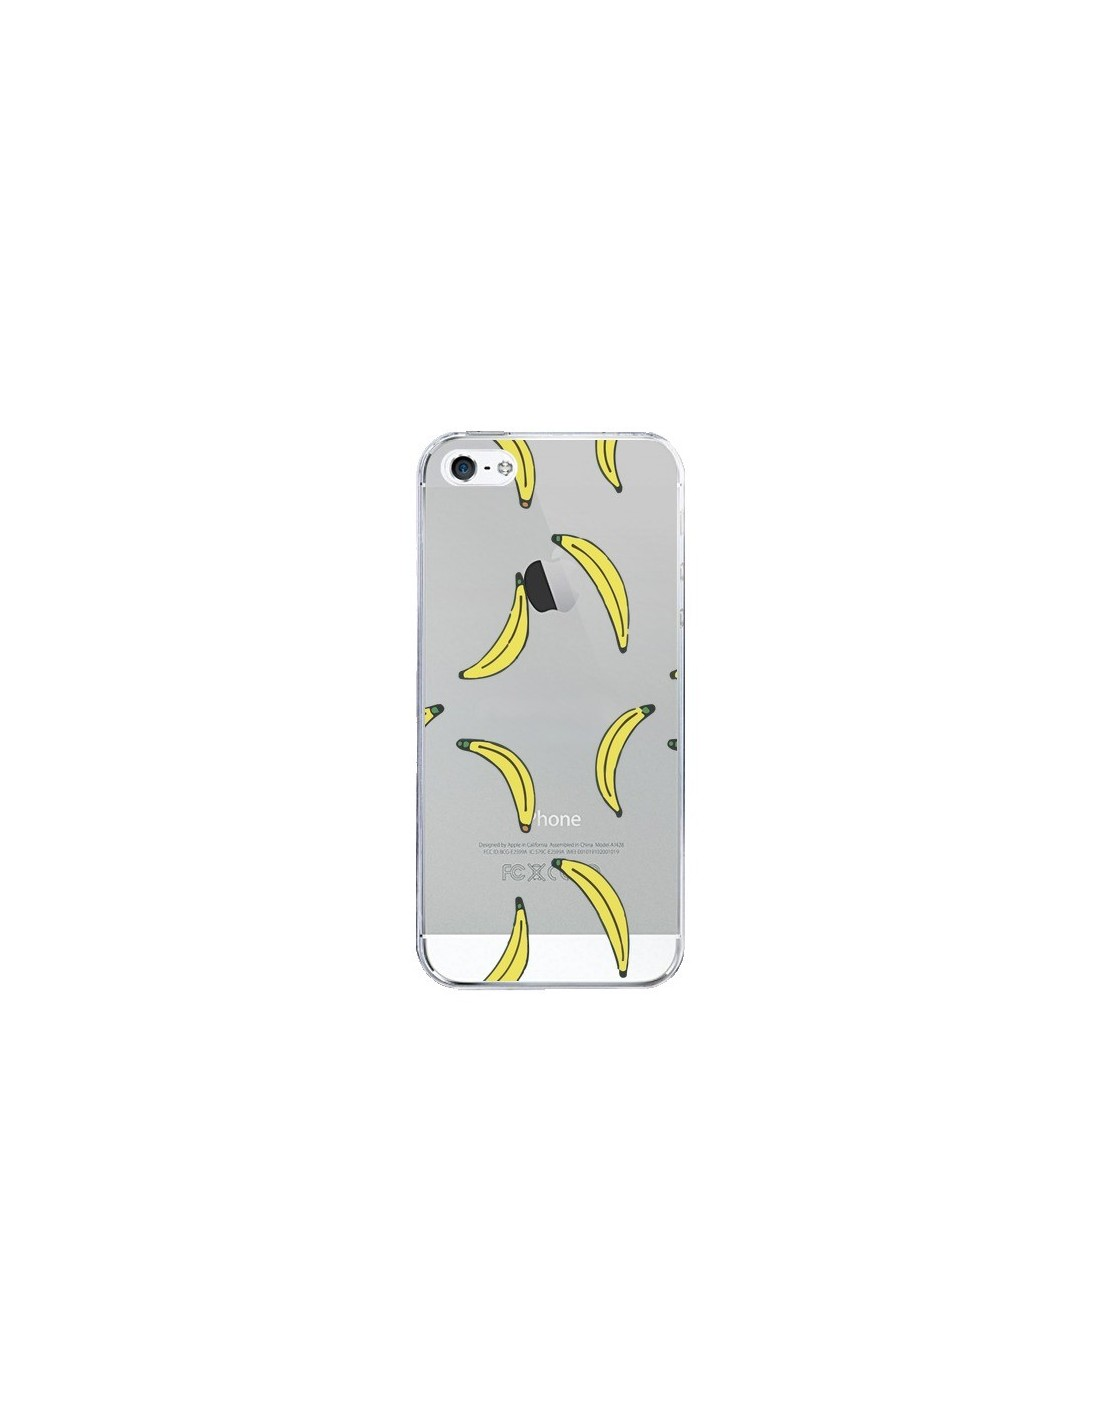 coque bananes bananas fruit transparente pour iphone 5 5s et se dricia do. Black Bedroom Furniture Sets. Home Design Ideas